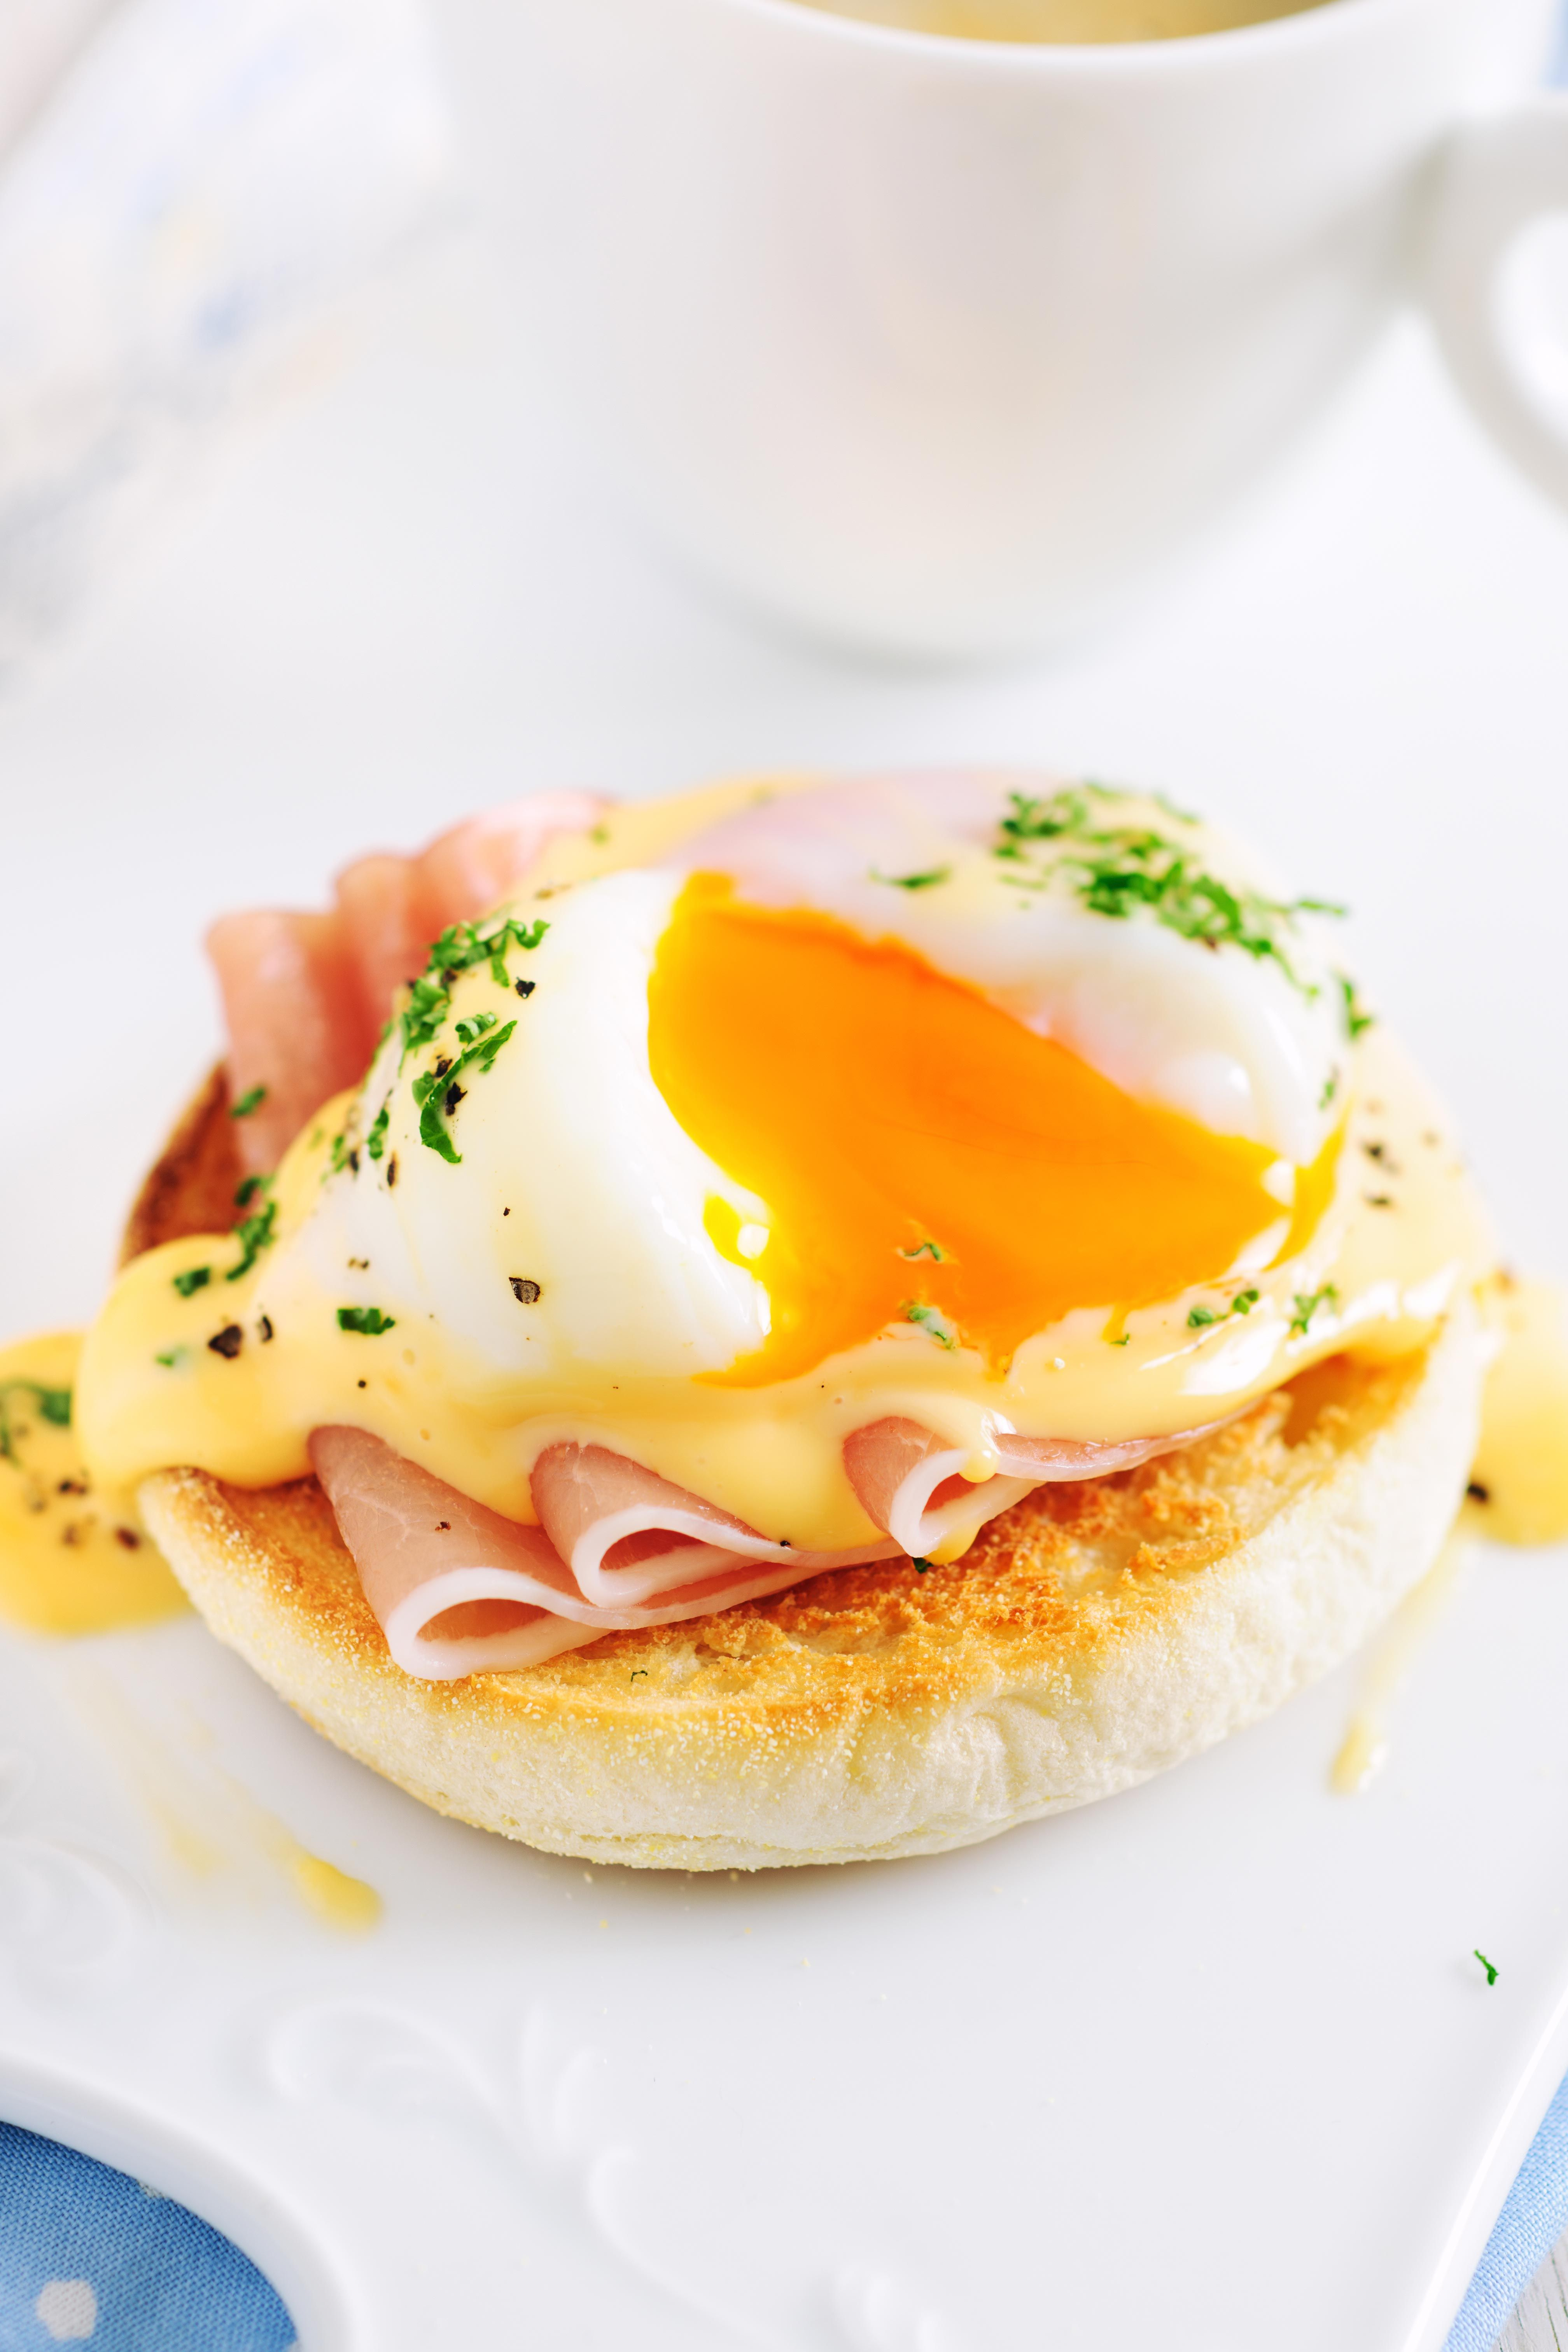 most popular food eggs benedict